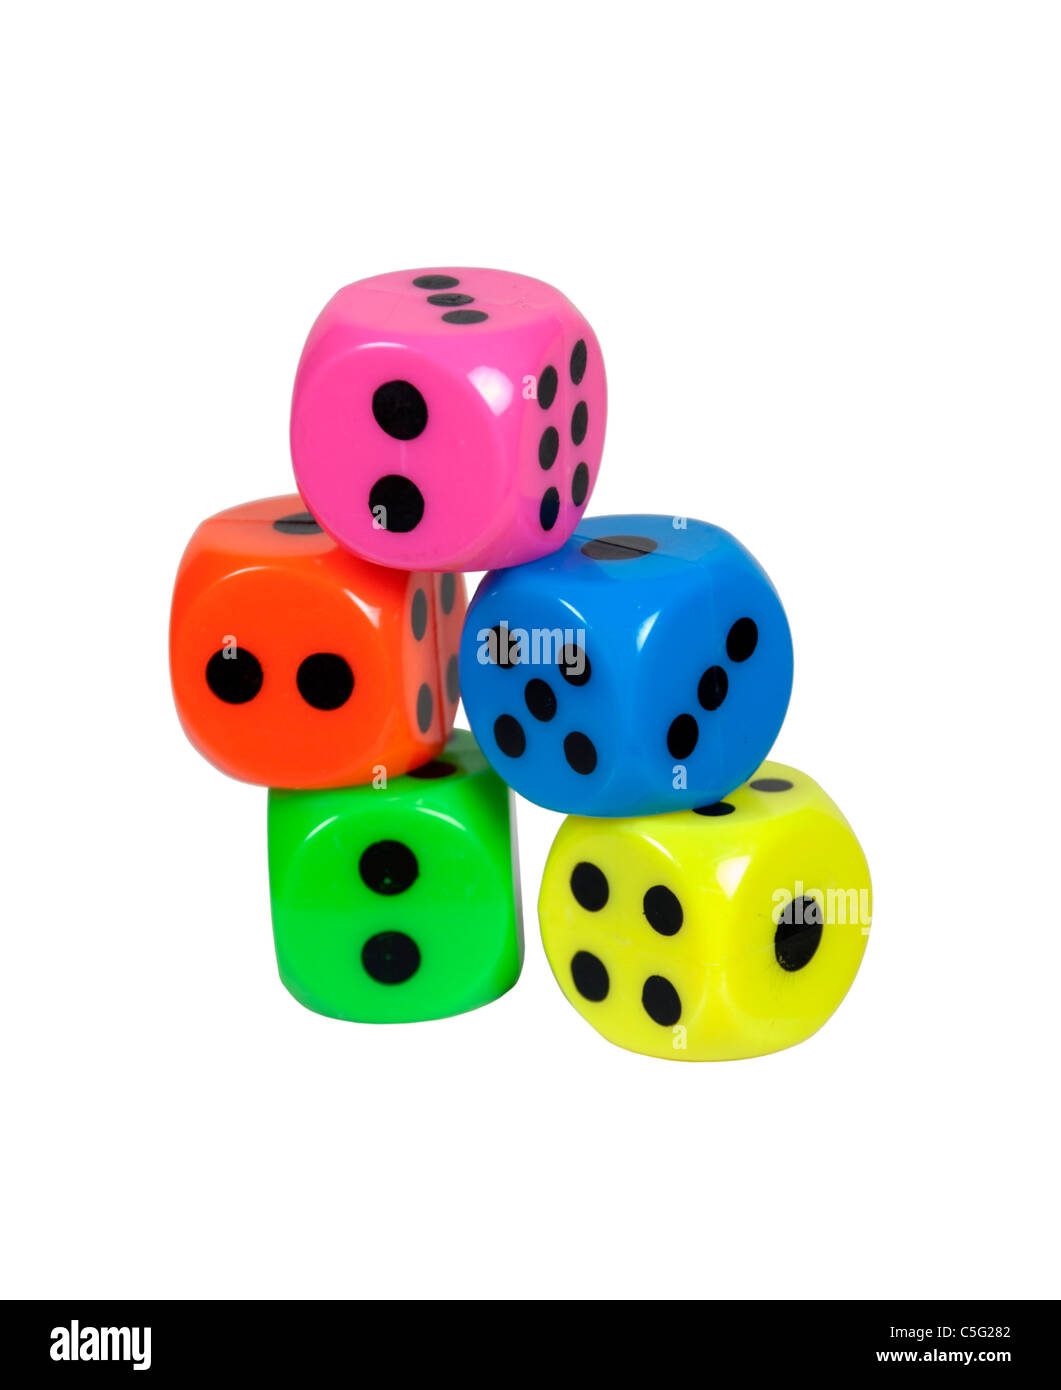 Colorful dice used to gamble and make decisions on a roll - path included - Stock Image